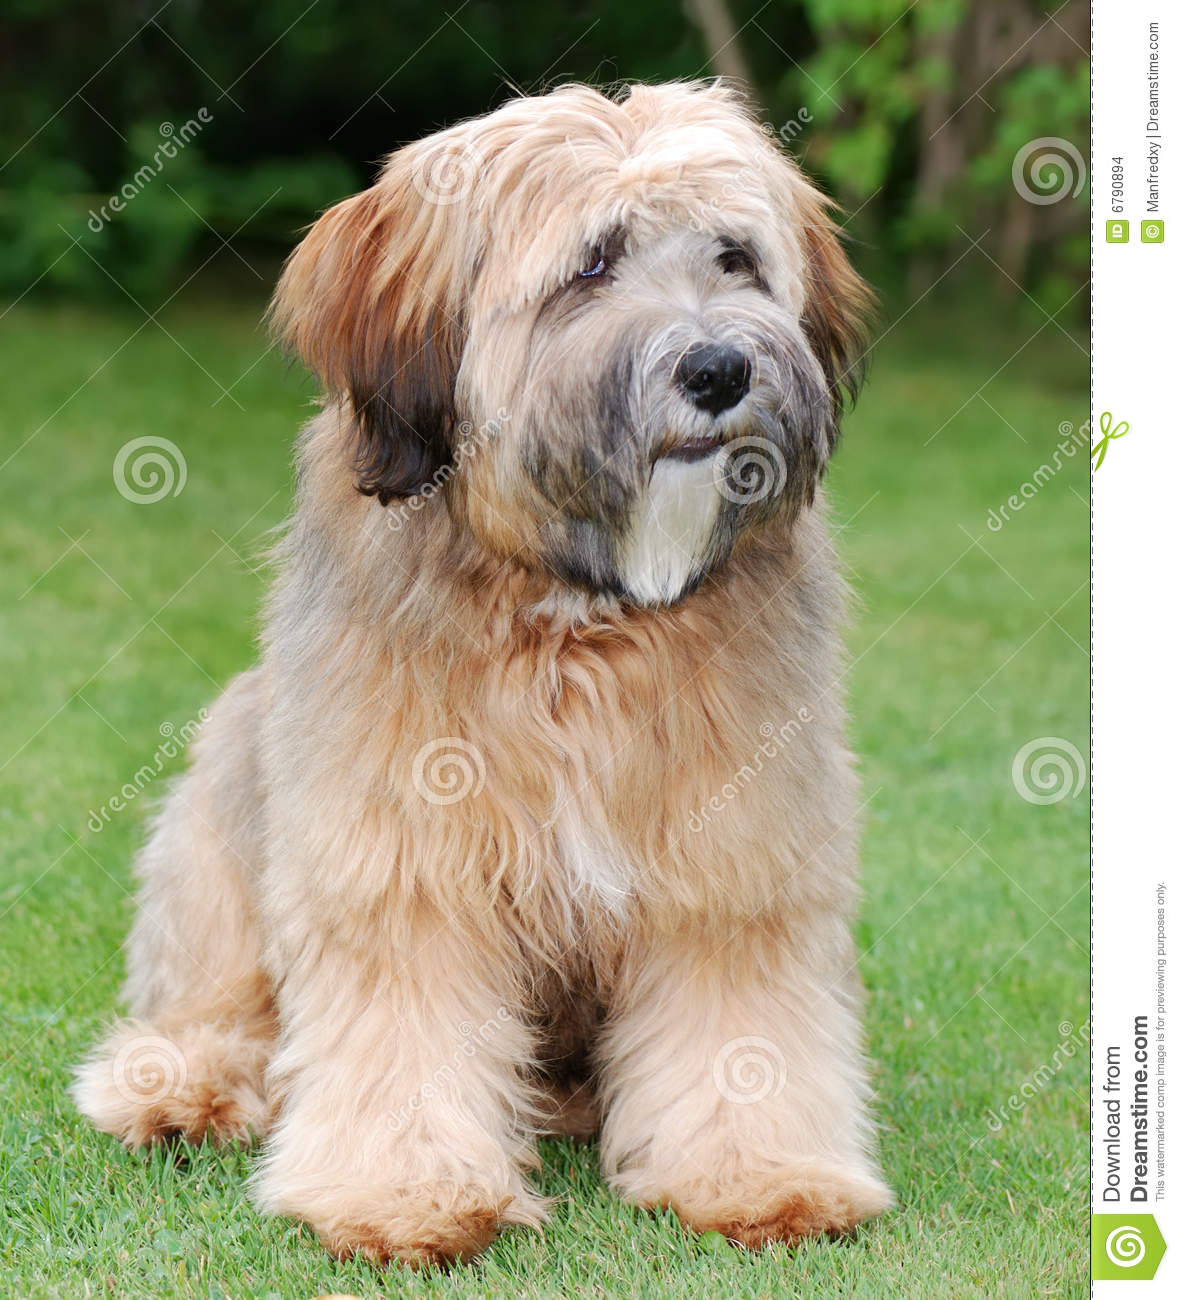 Tibetan Terrier Dog: Tibetan Stock S Tibetan Terrier Dog Breed